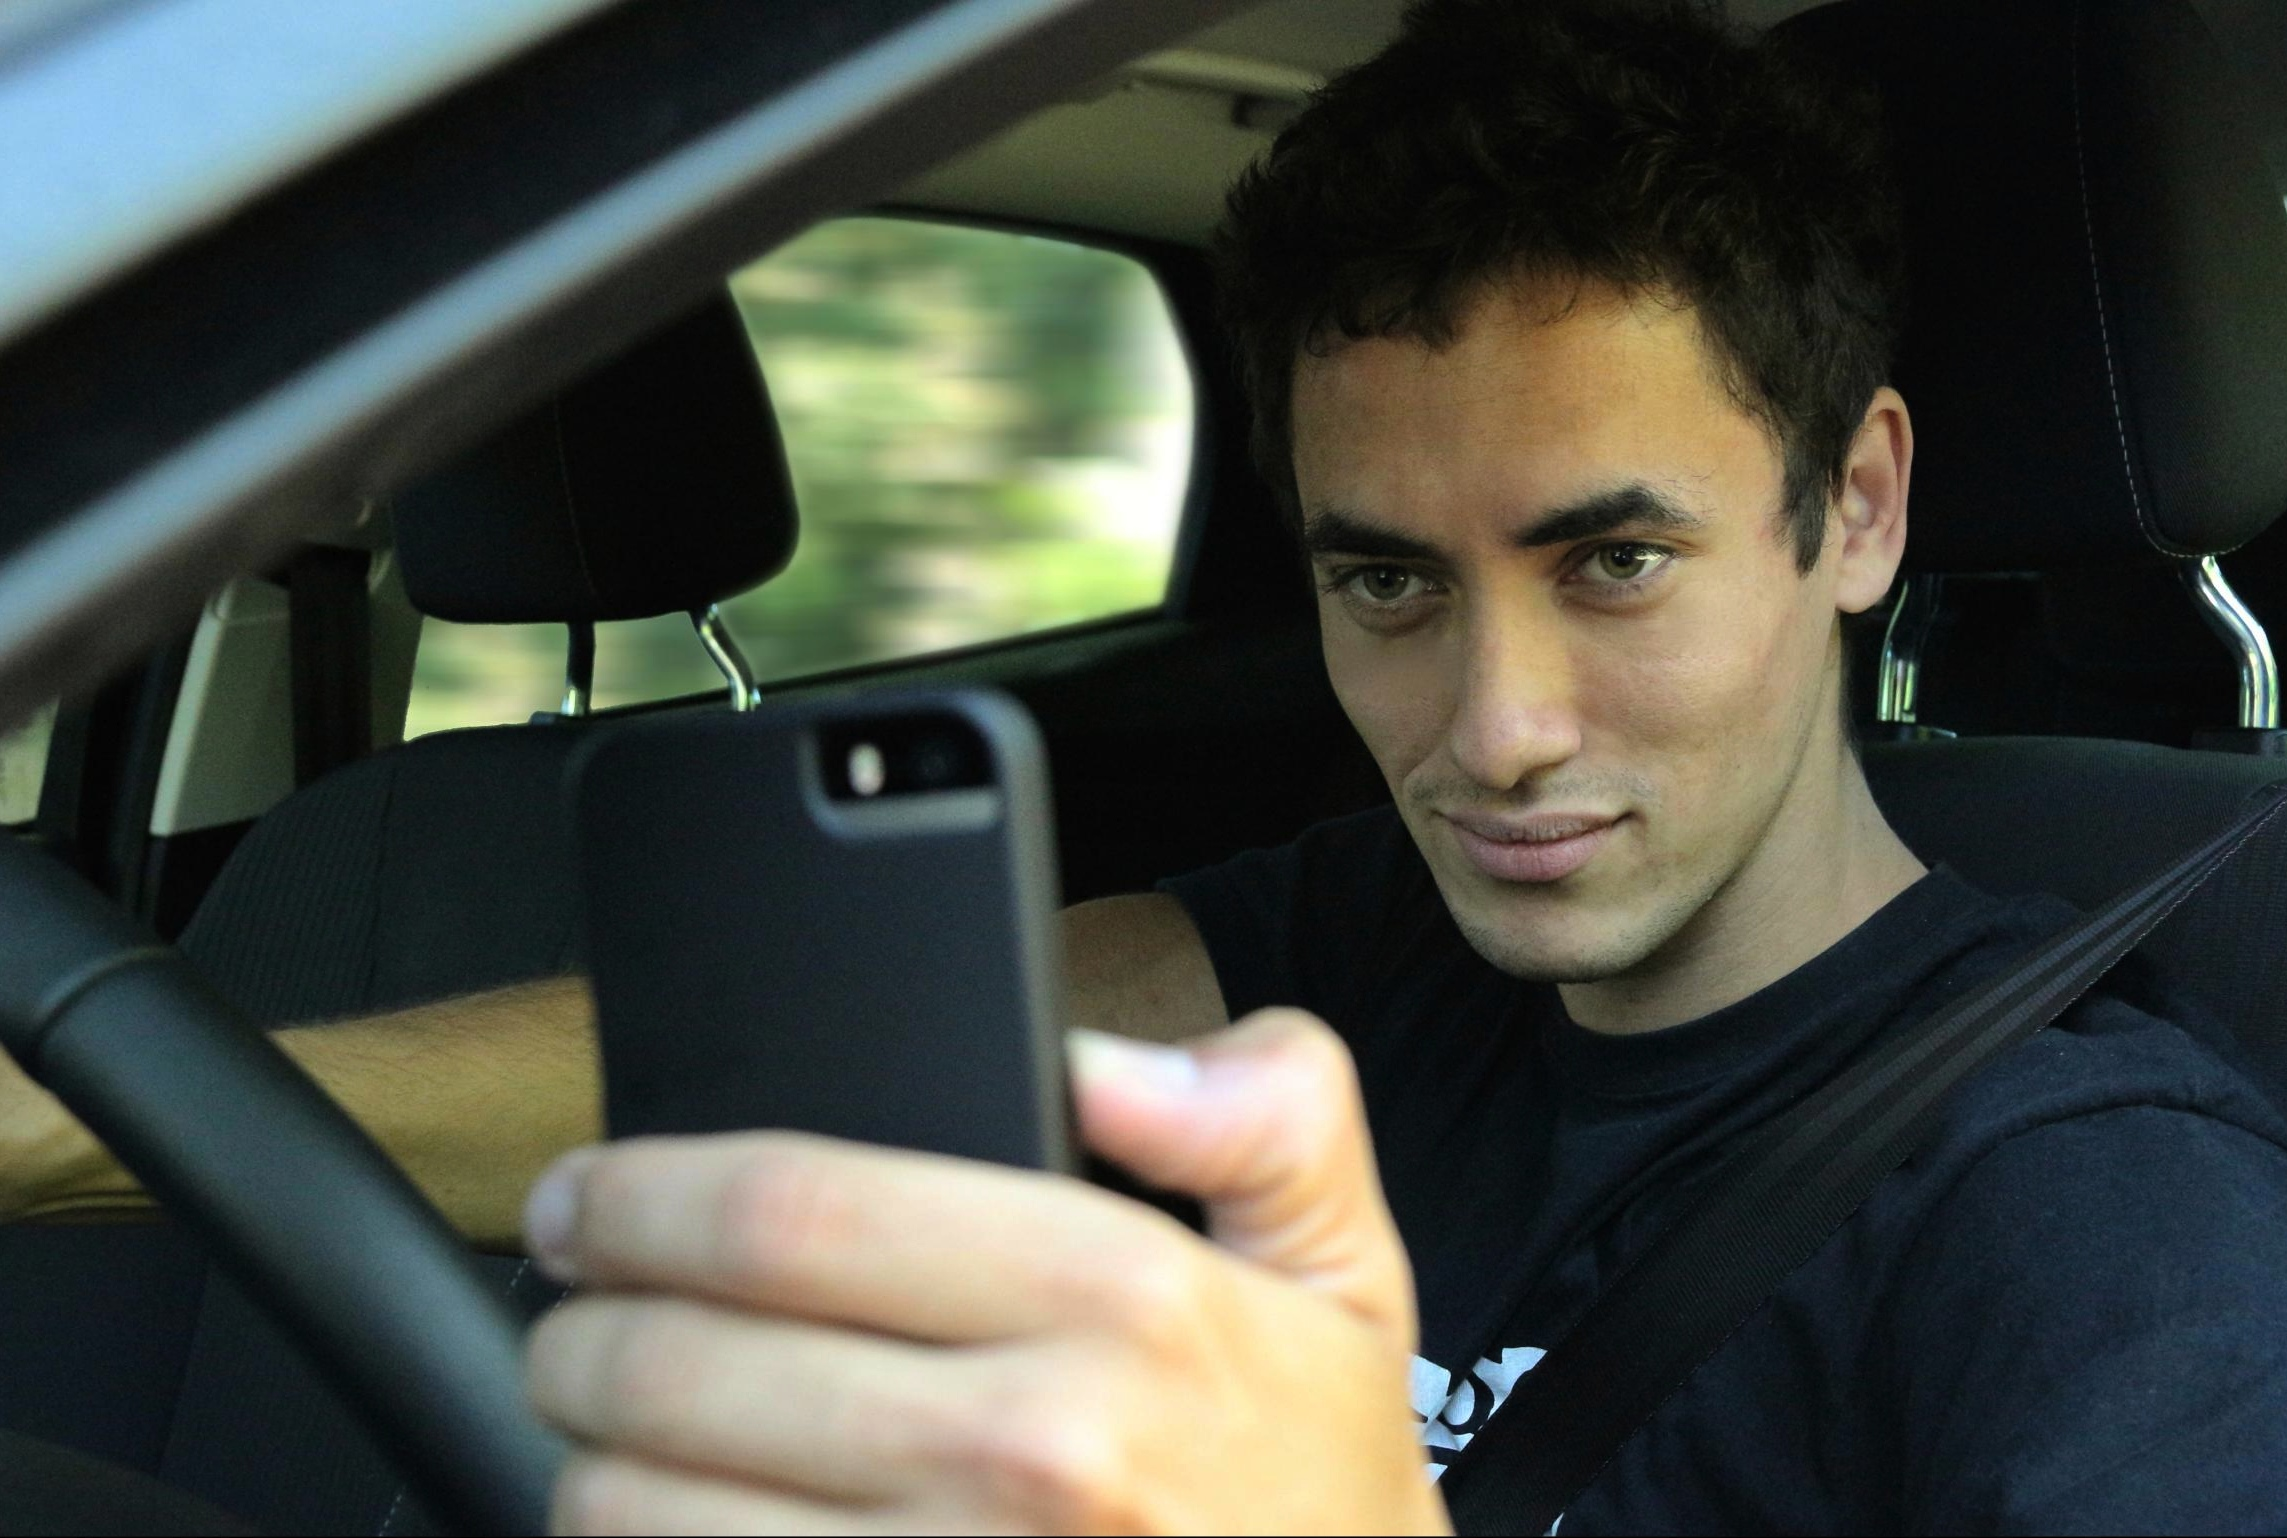 Don't use your smart phone when driving